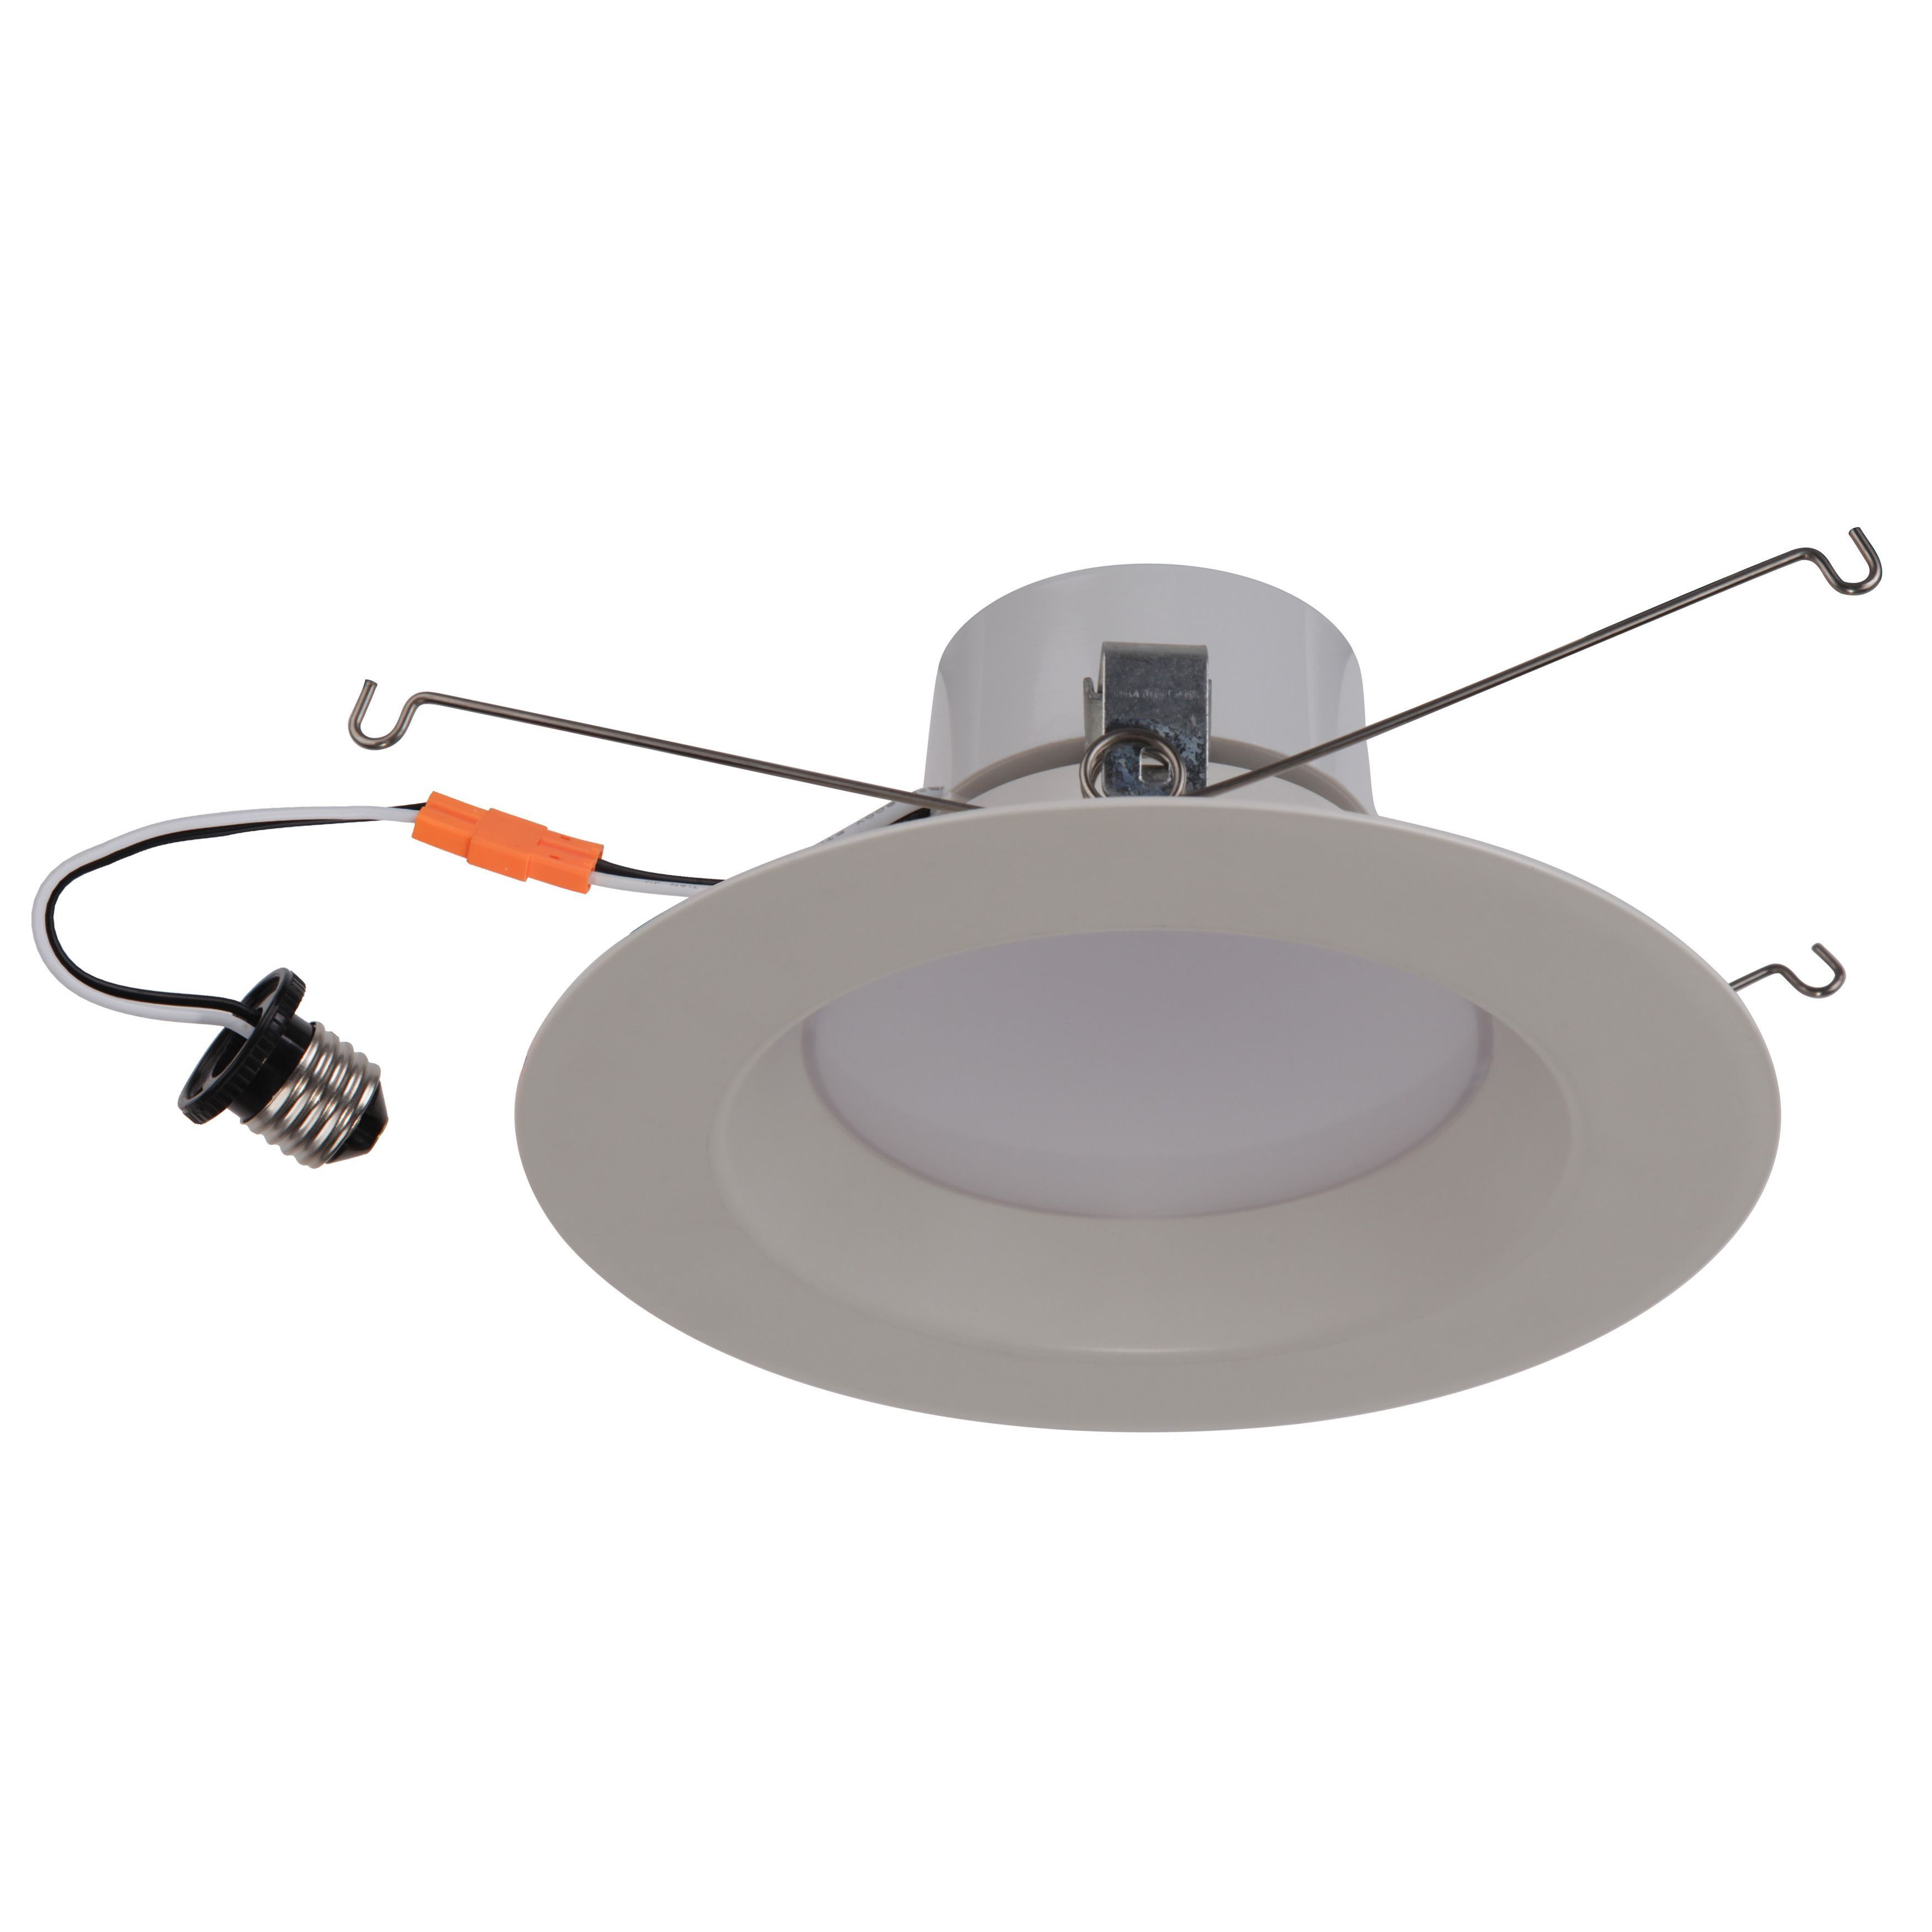 Hallway lighting no outlet  Goodlite White Acrylic Round Retrofit watt LED Dimmable Recessed